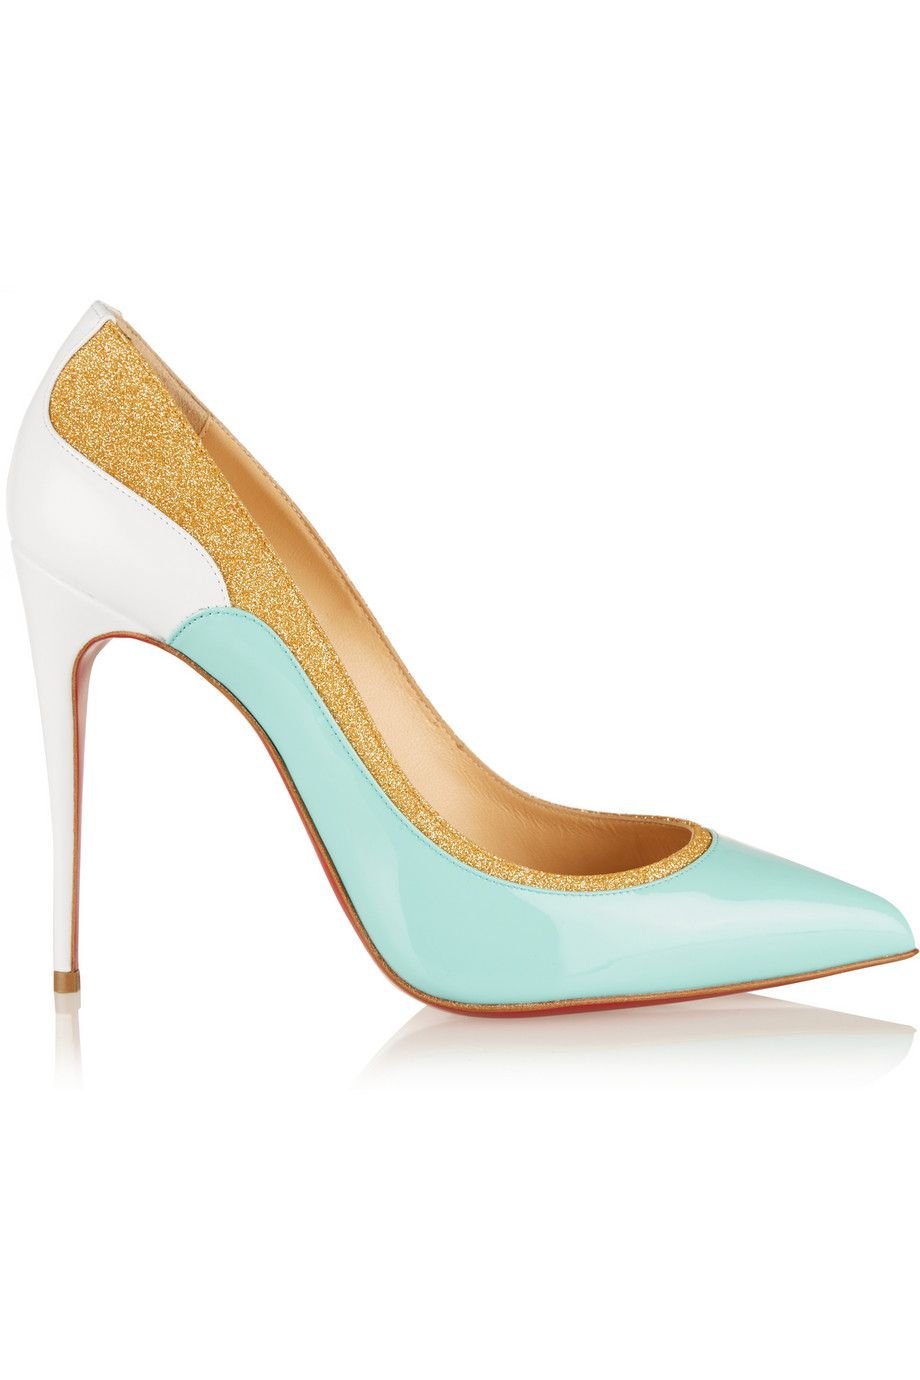 Christian Louboutin | Tucsick 100 glitter-trimmed patent-leather pumps | NET-A-PORTER.COM